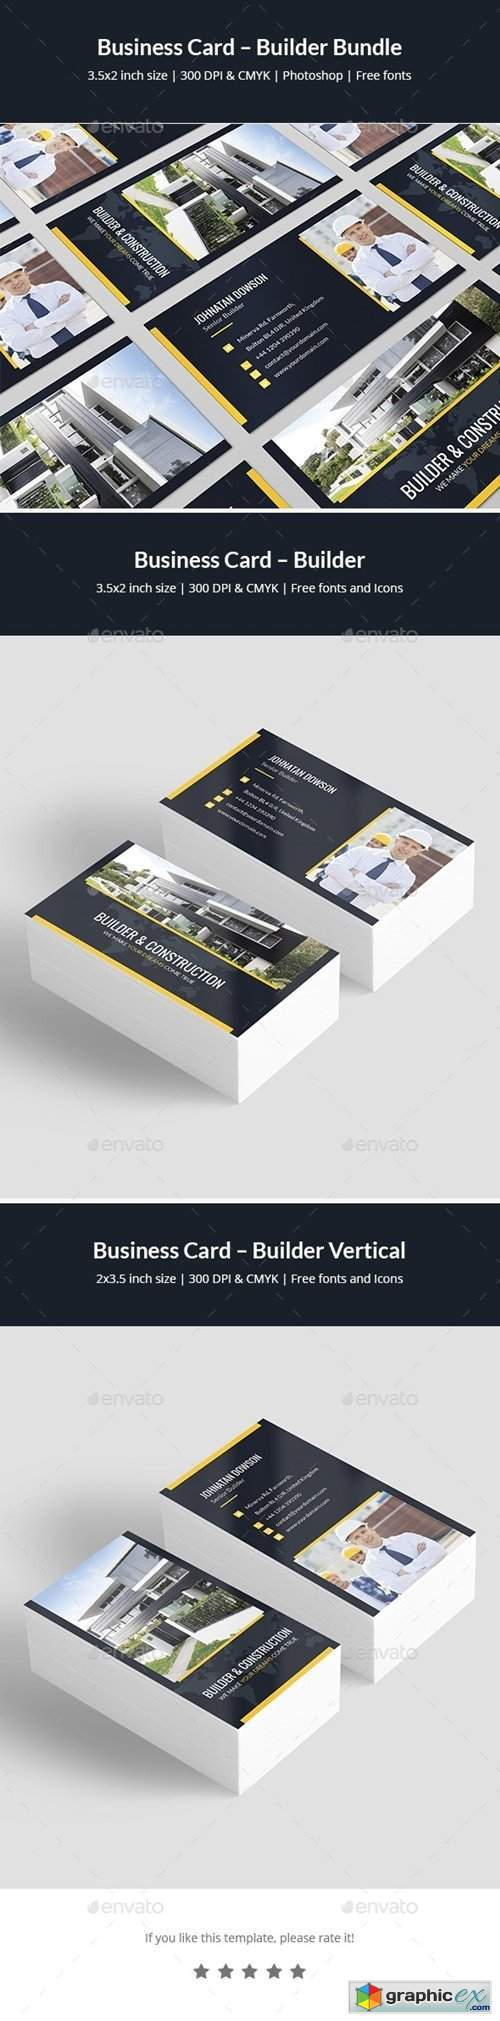 Business Card – Builder Bundle Print Templates 2 in 1